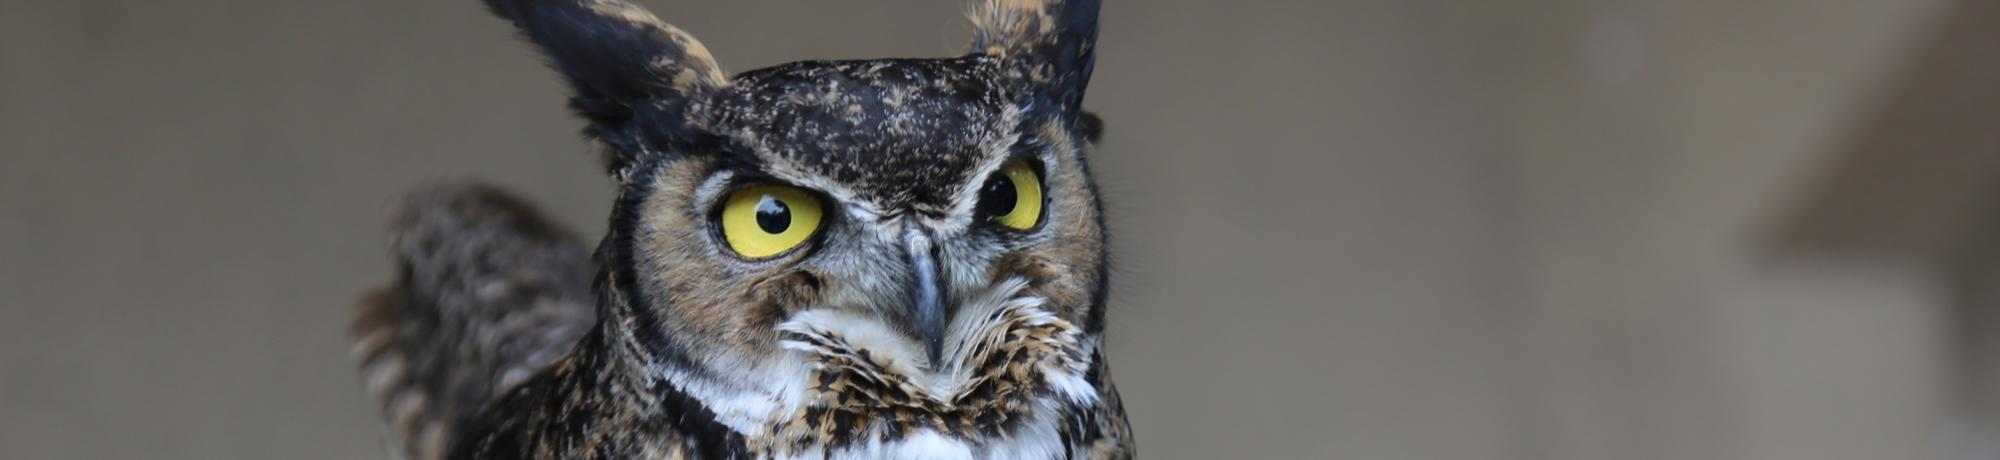 Forrest is a great horned owl